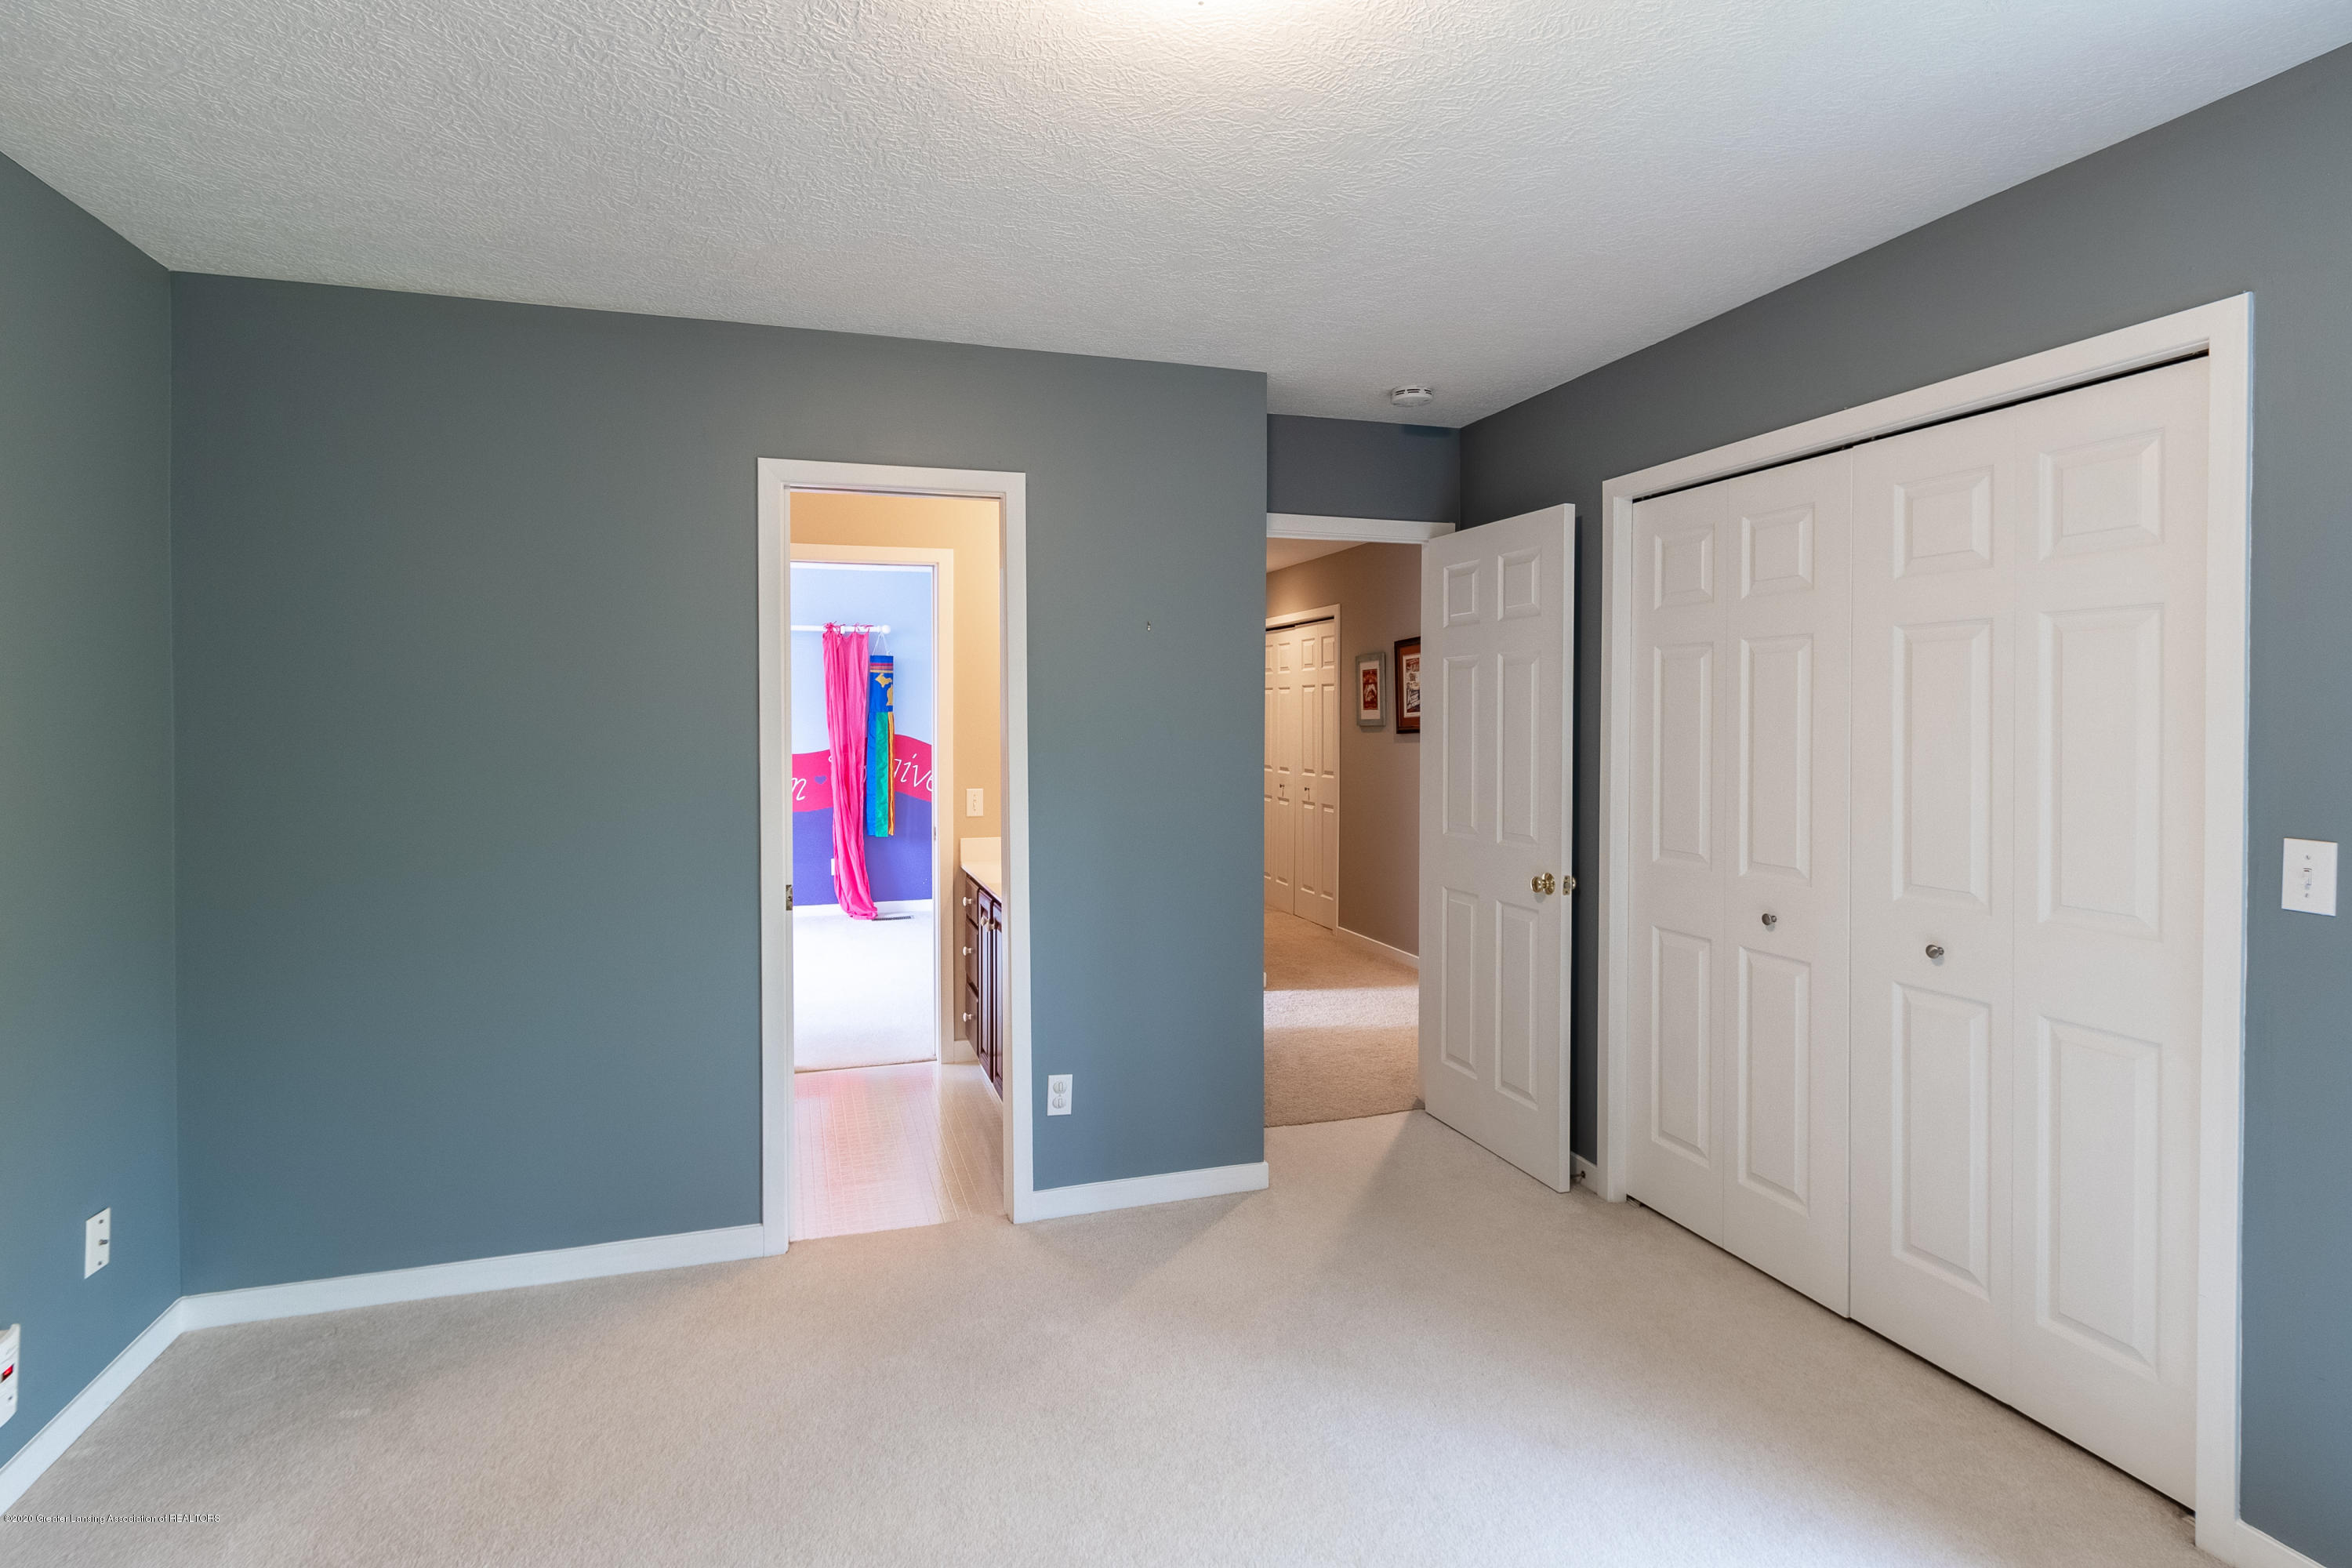 3668 Fairhills Dr - Bedroom 3 - 62